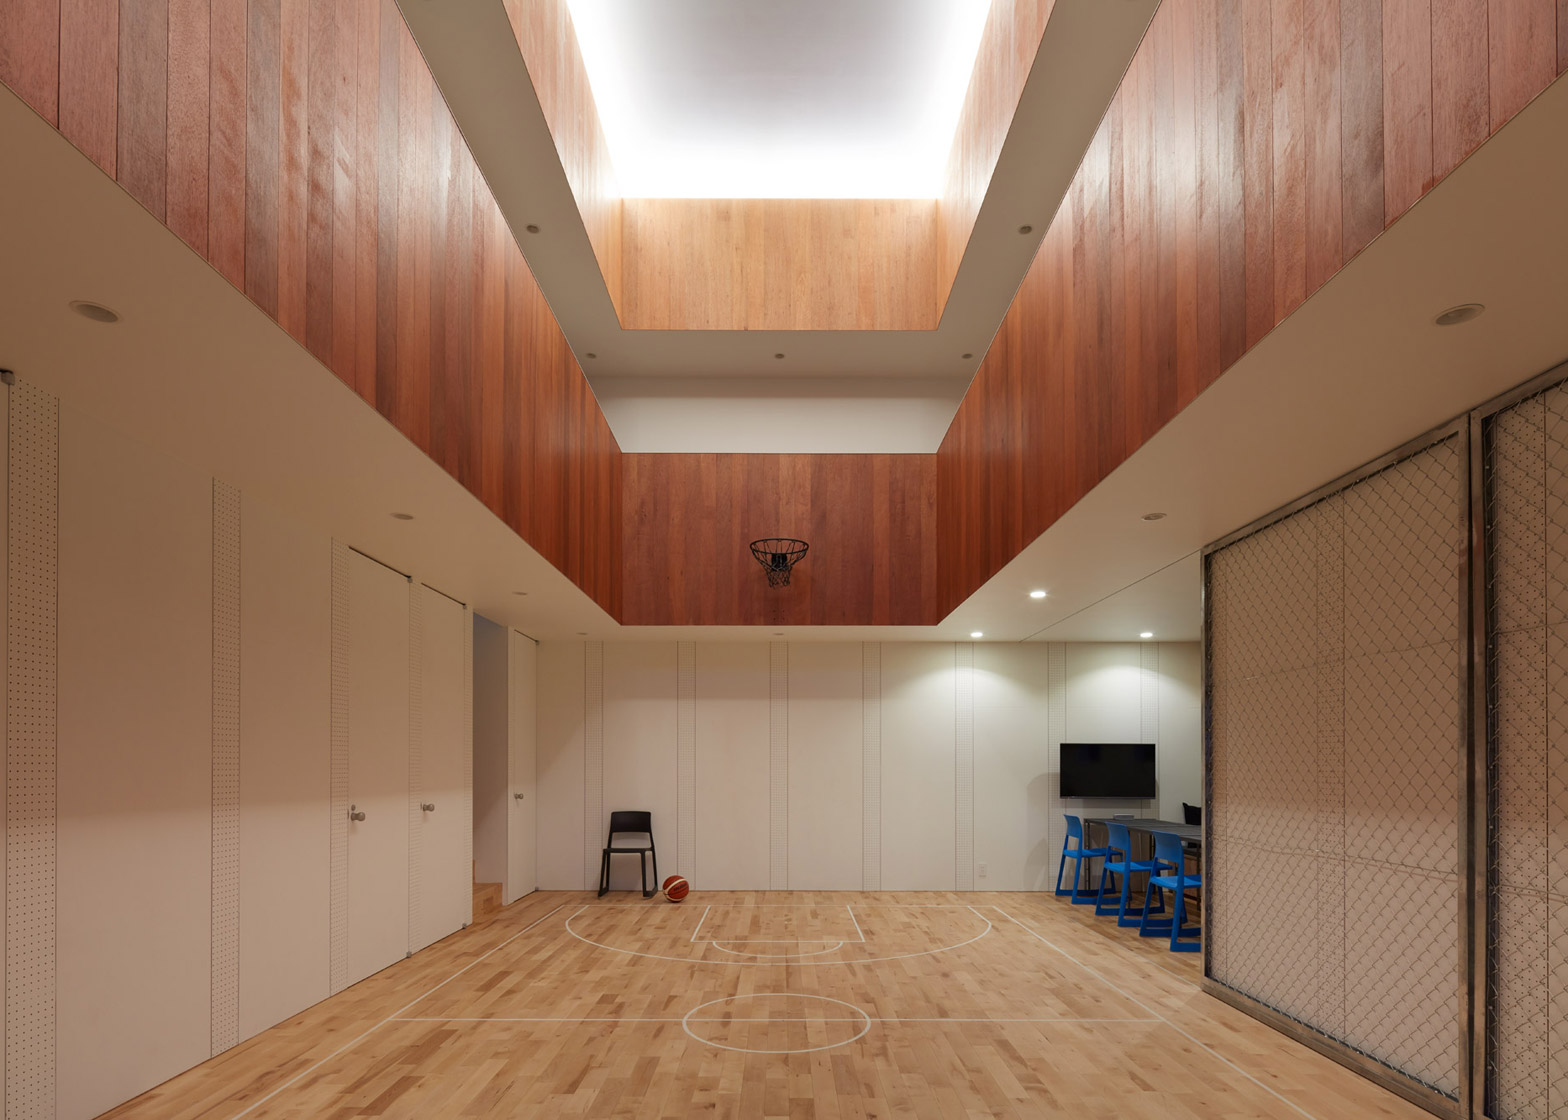 A House In Japan Has An Indoor Basketball Court Your No